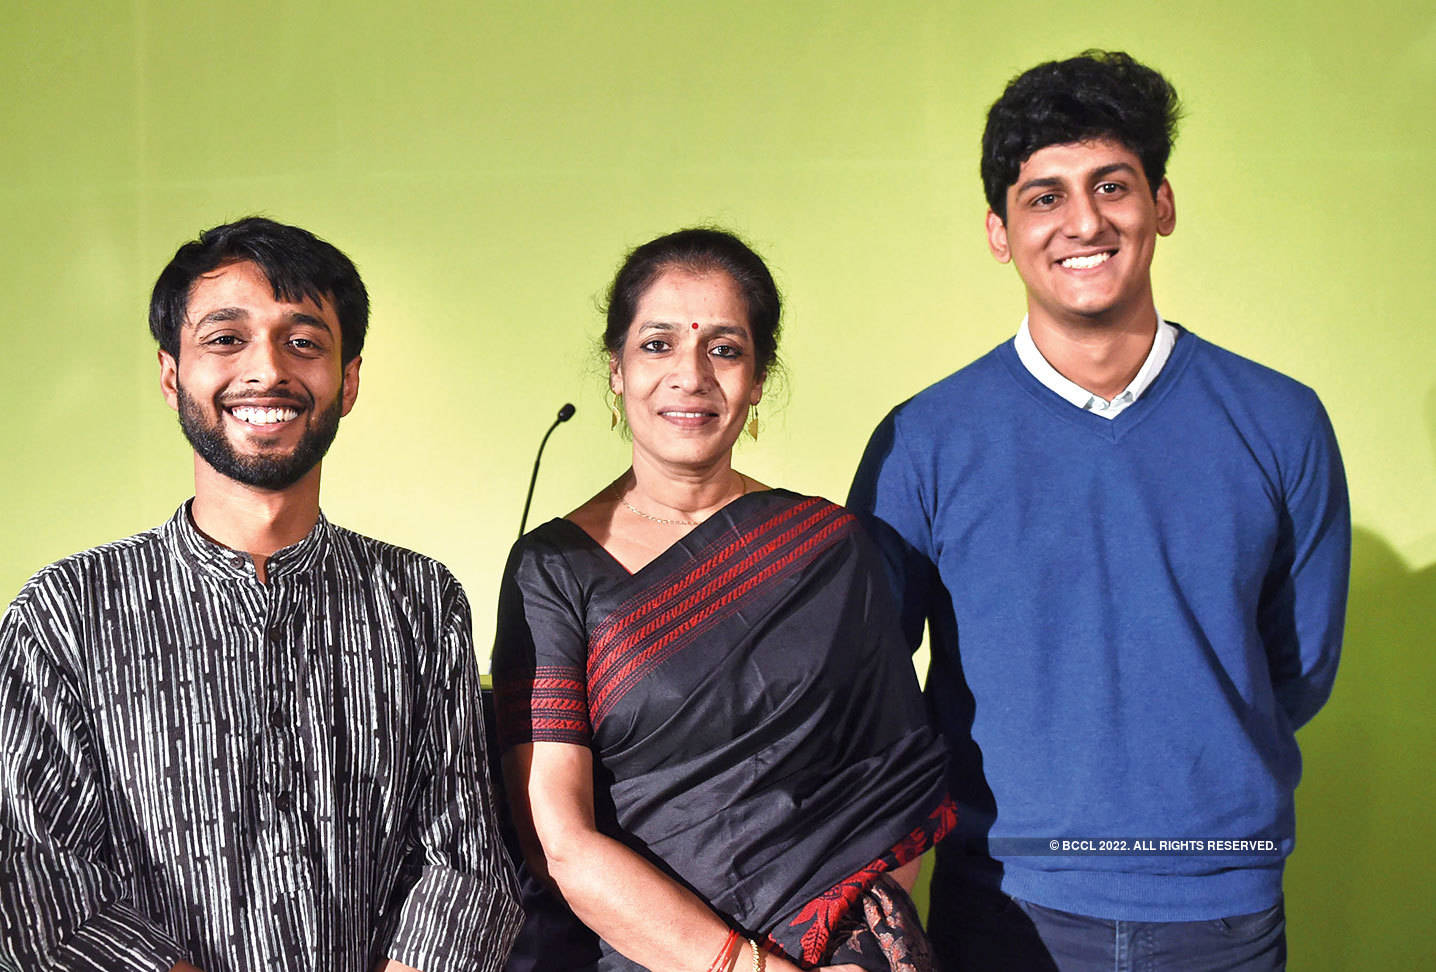 Vibha Chauhan, Principal, Kirori Mal College with participants from the college – Krishtijeet Das (left) and Sawal Choudhary (right)